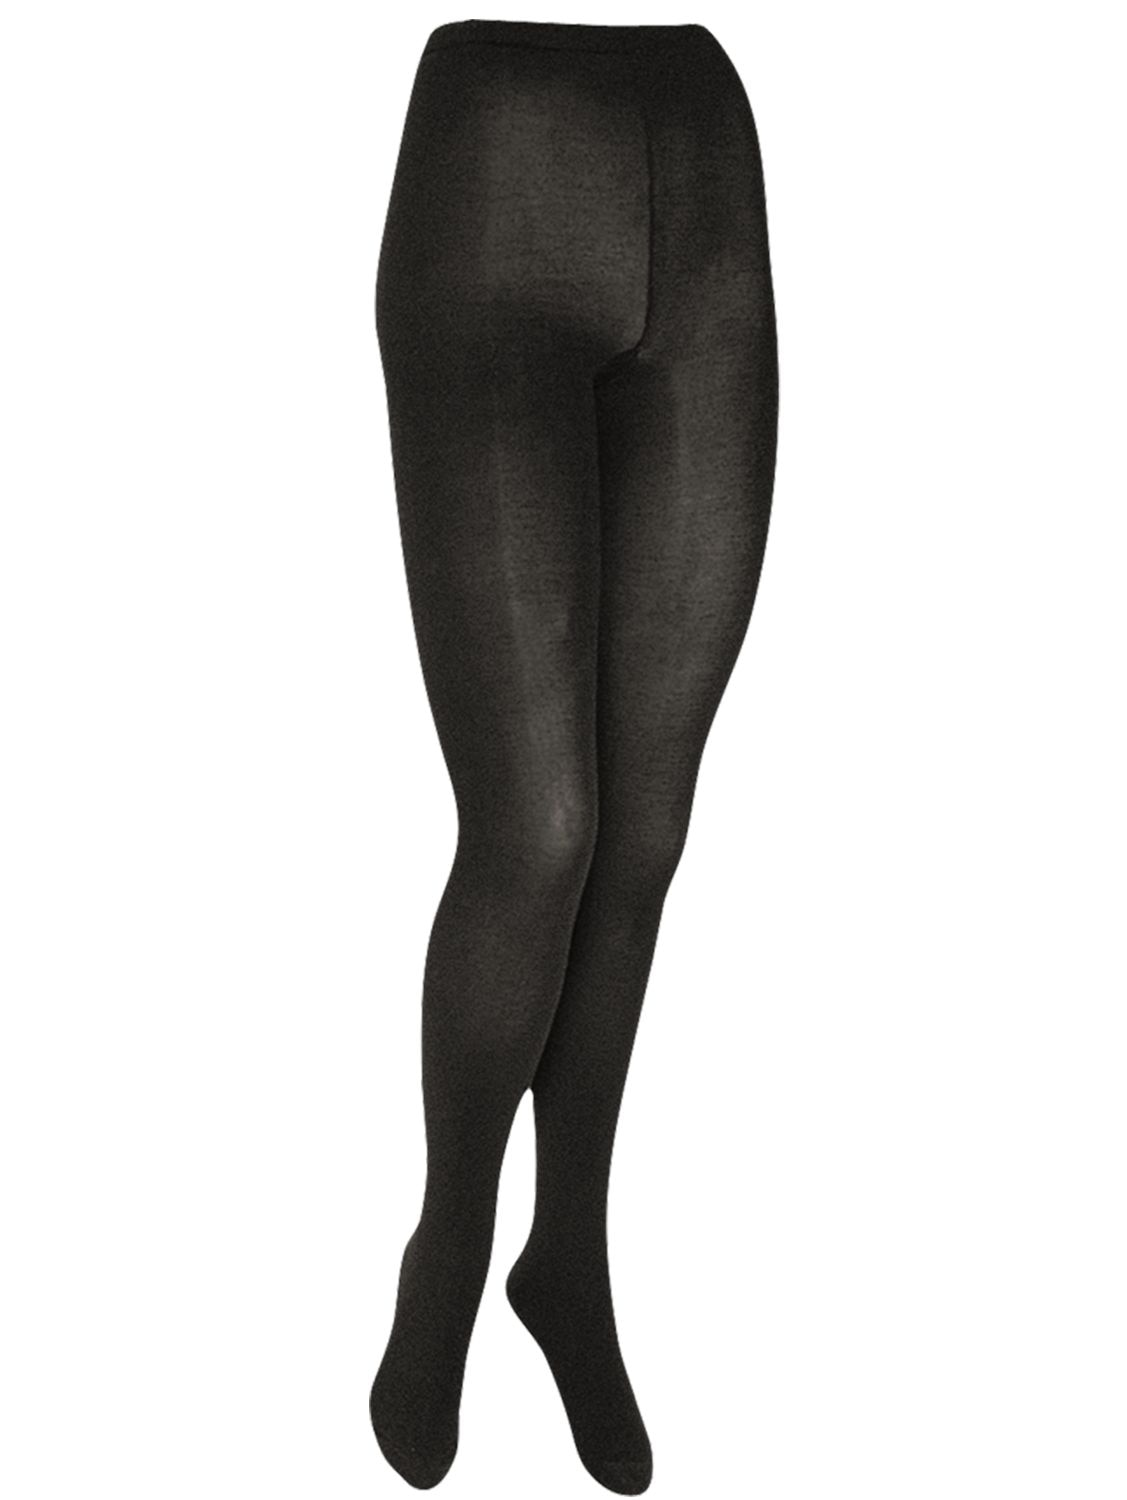 22a2083ec98 Cotton Tights - Womens Medium Weight Hosiery